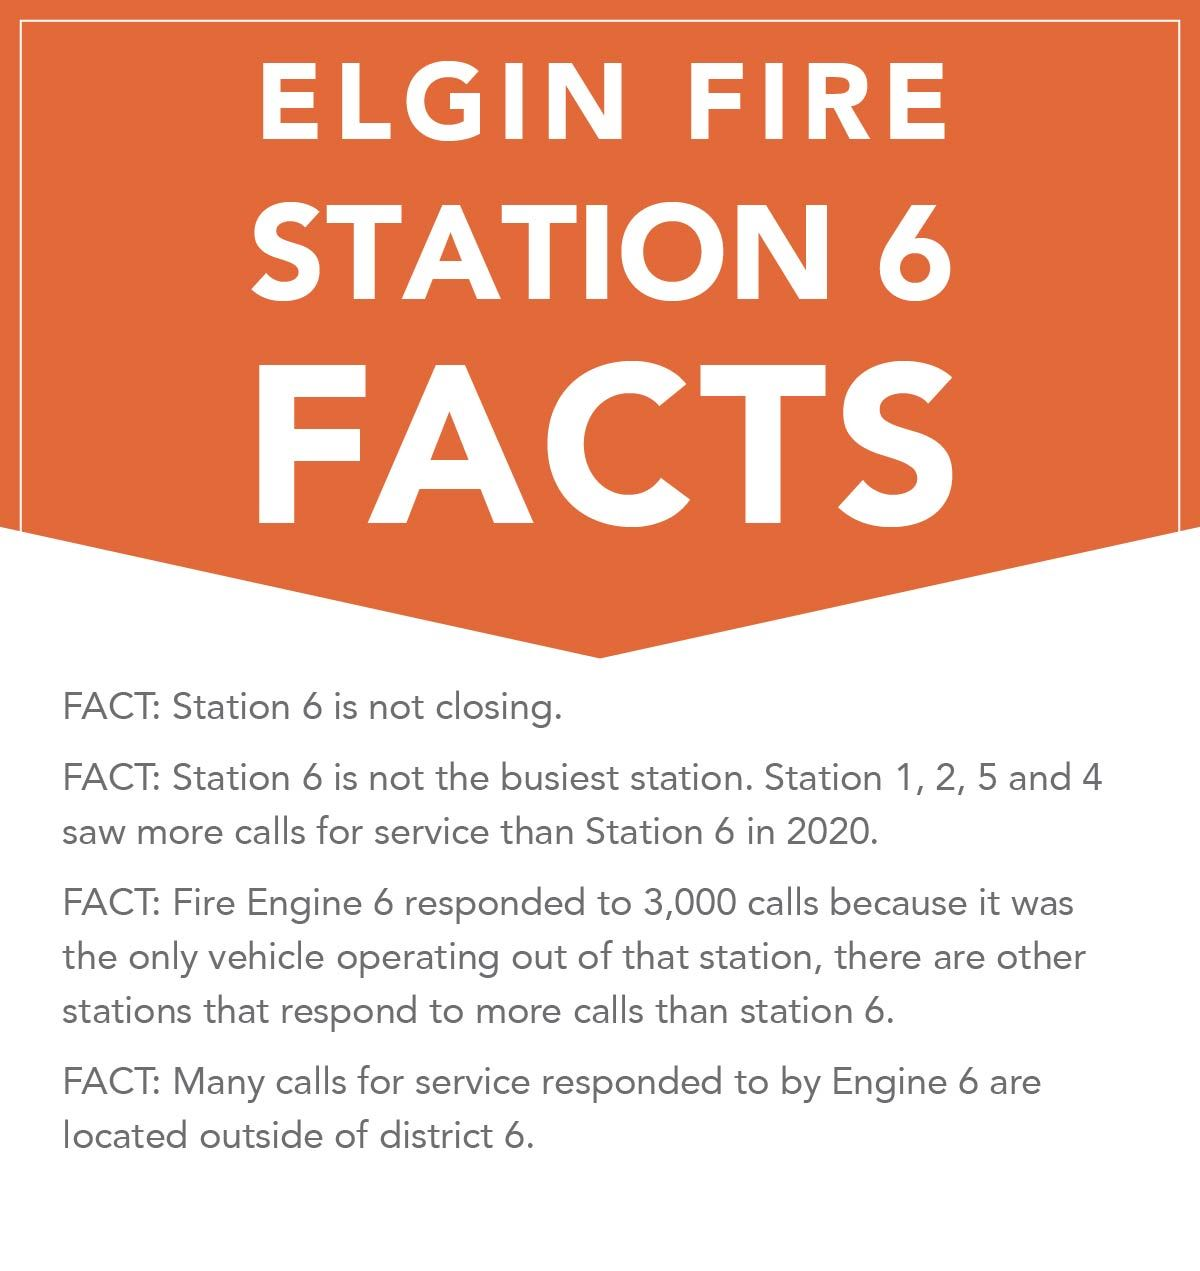 Station 6 Facts